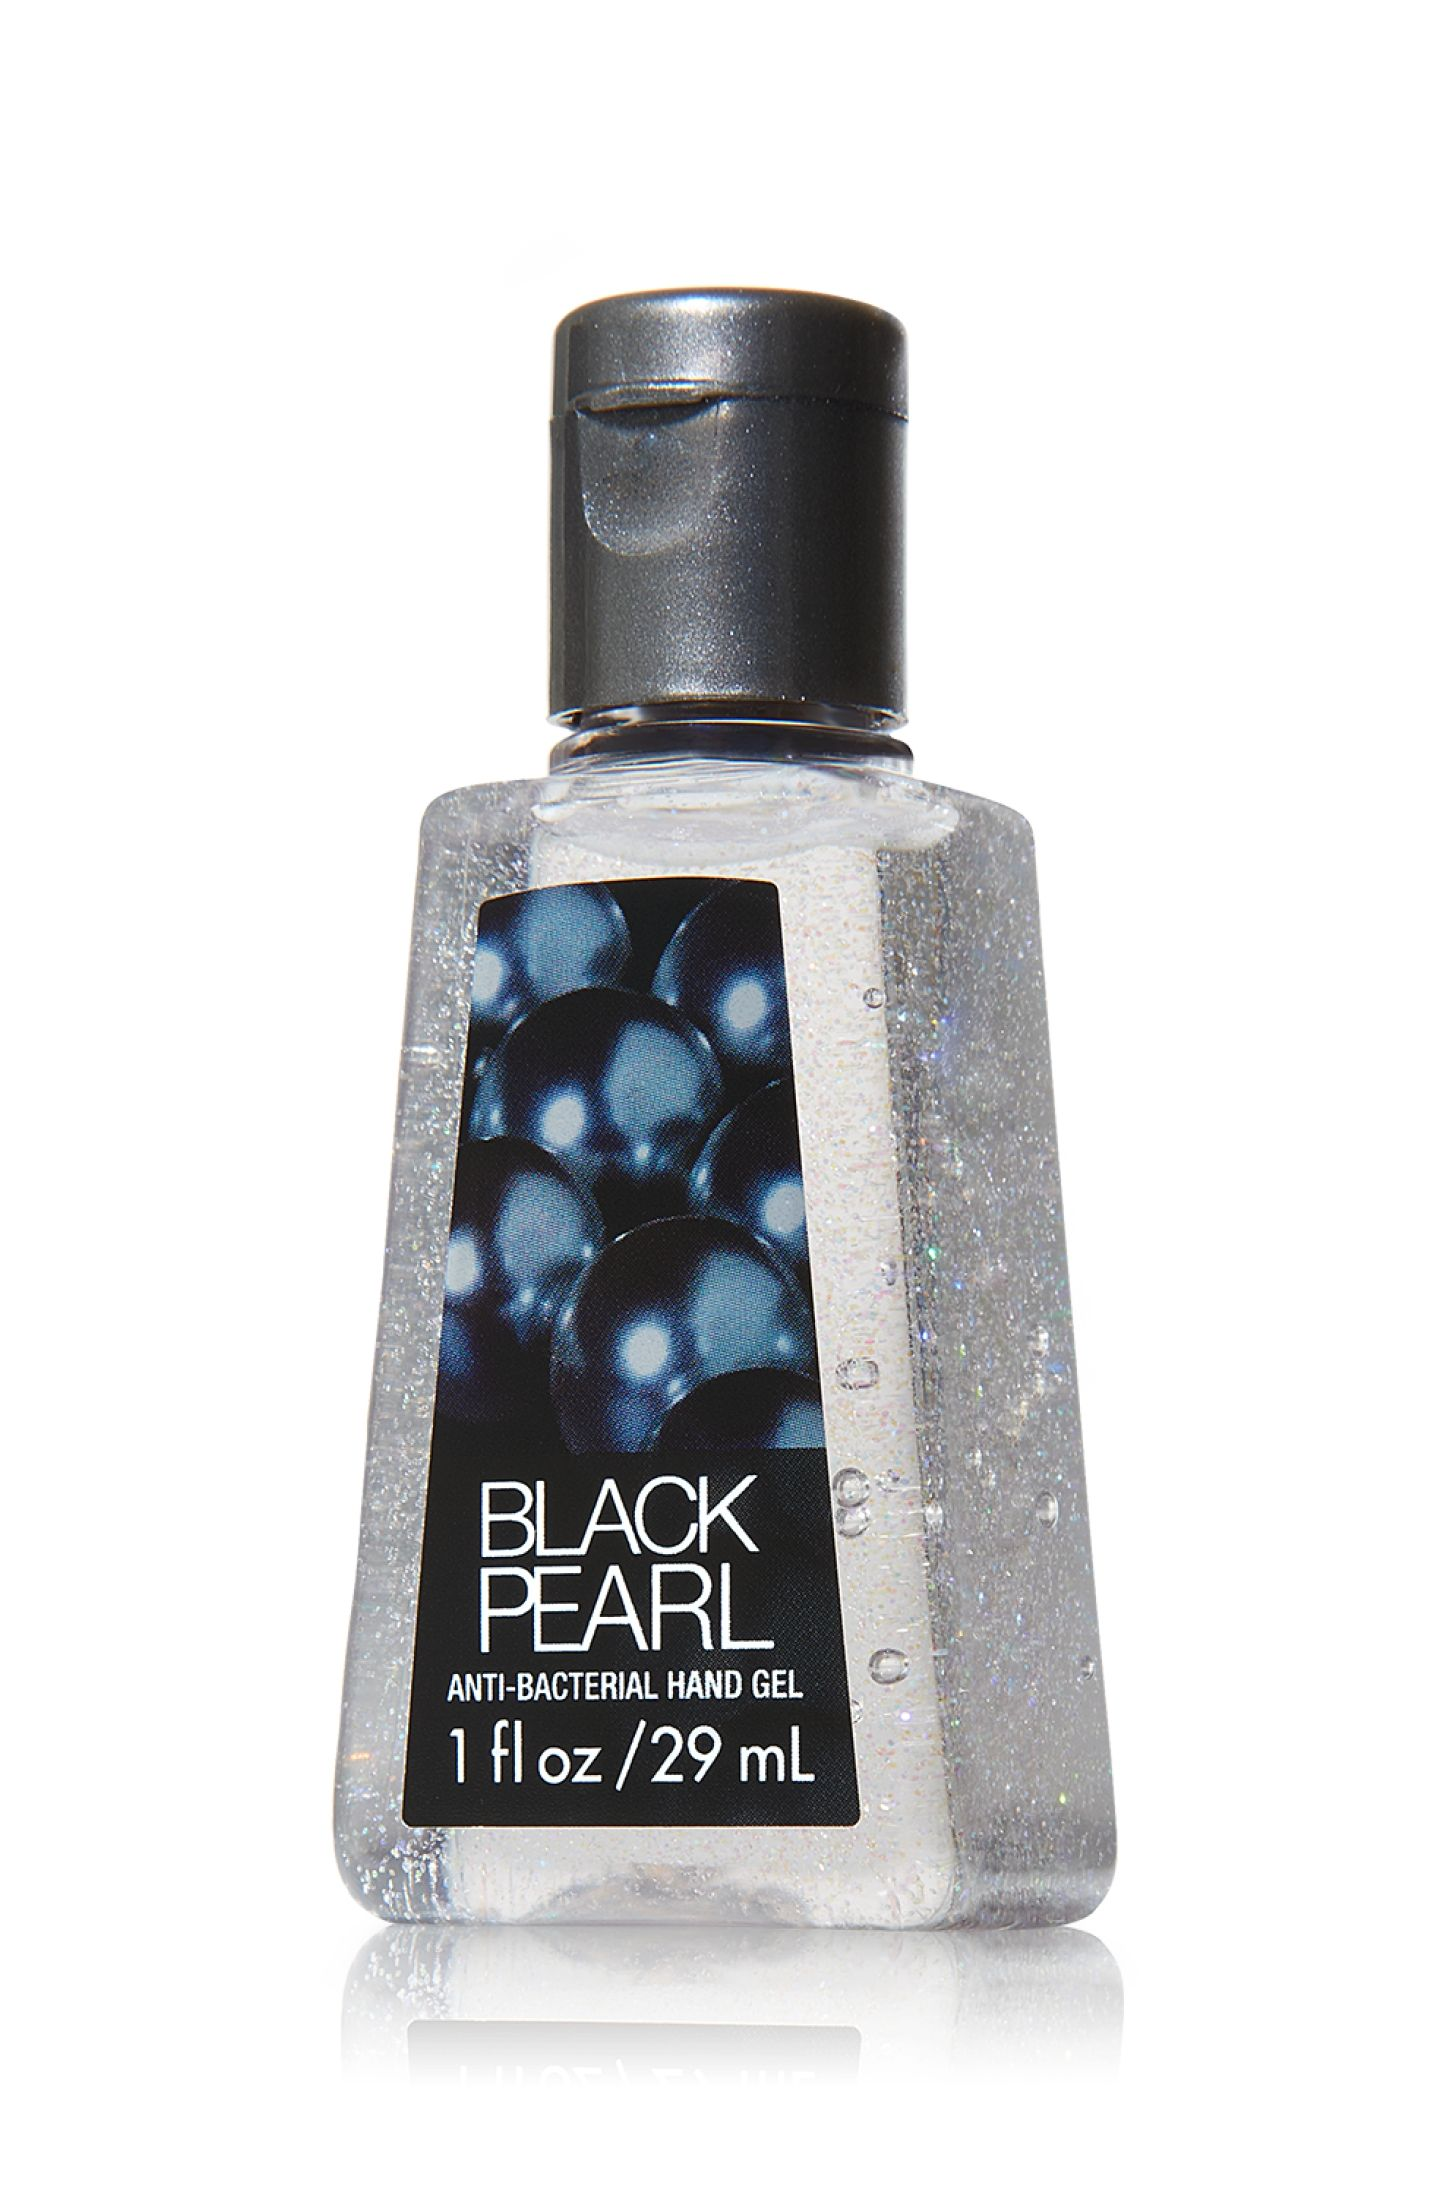 Black Pearl Pocketbac Sanitizing Hand Gel Anti Bacterial Bath